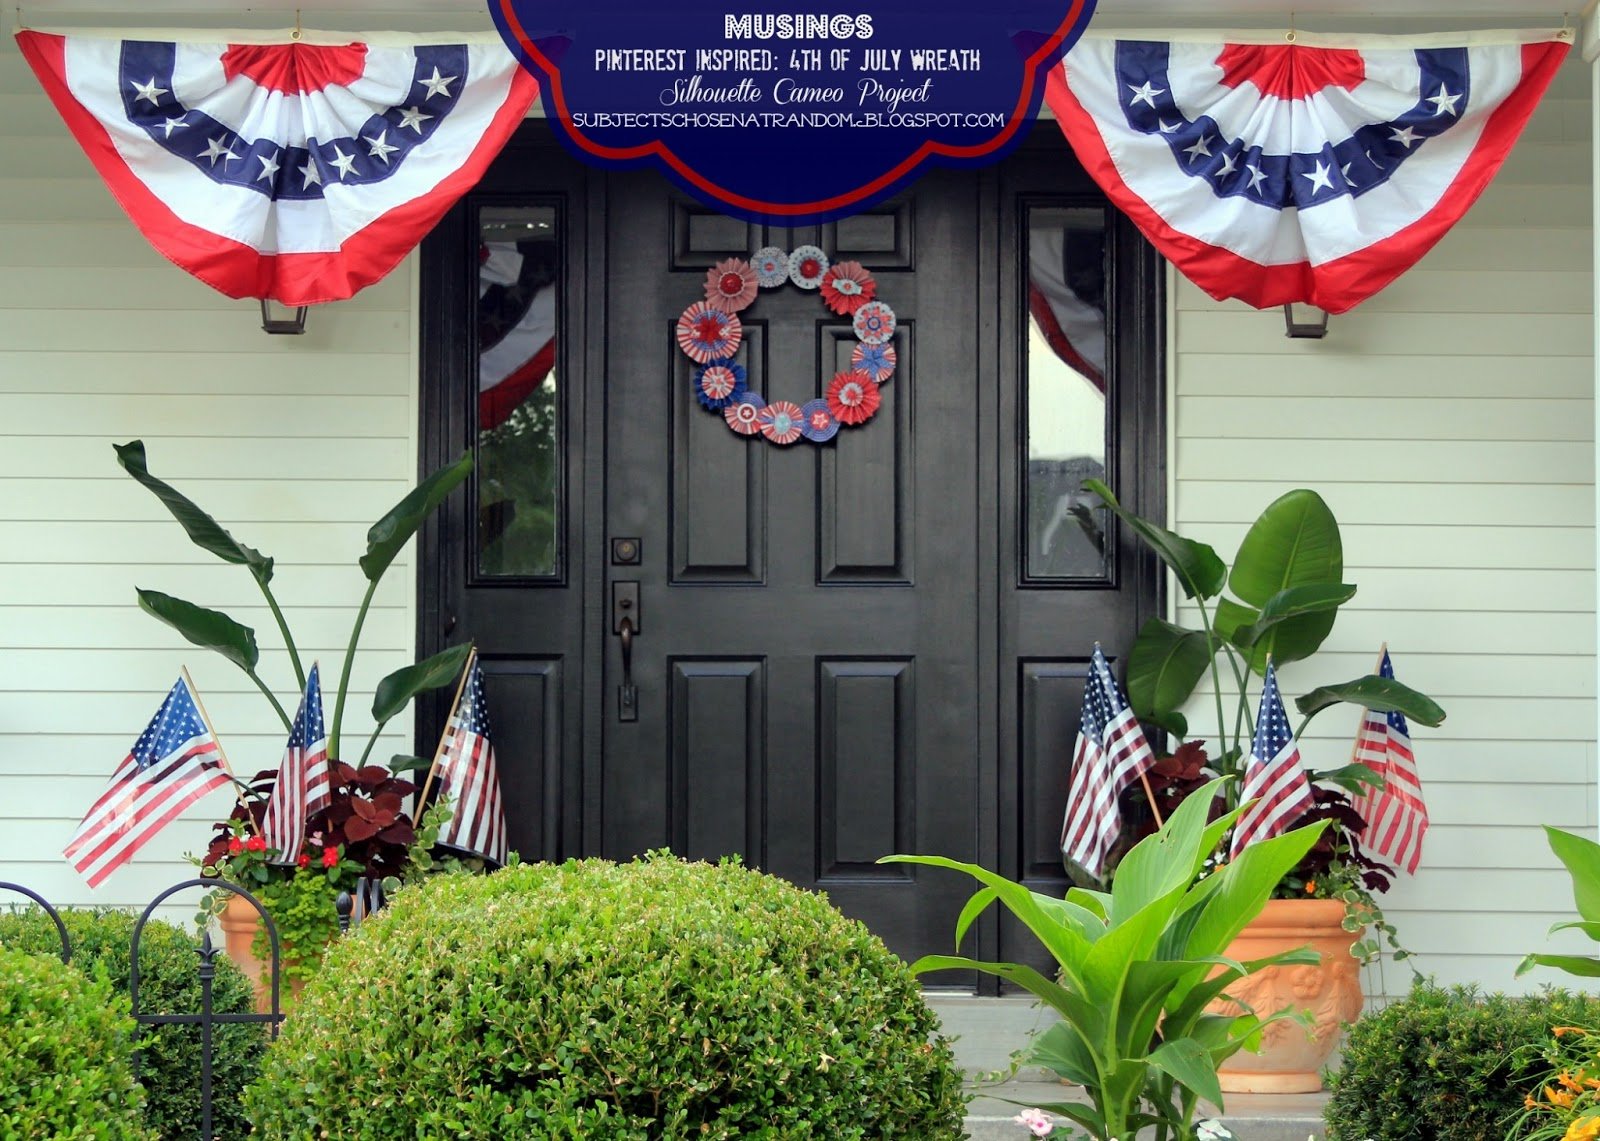 Musings Pinterest Inspired 4th Of July Wreath